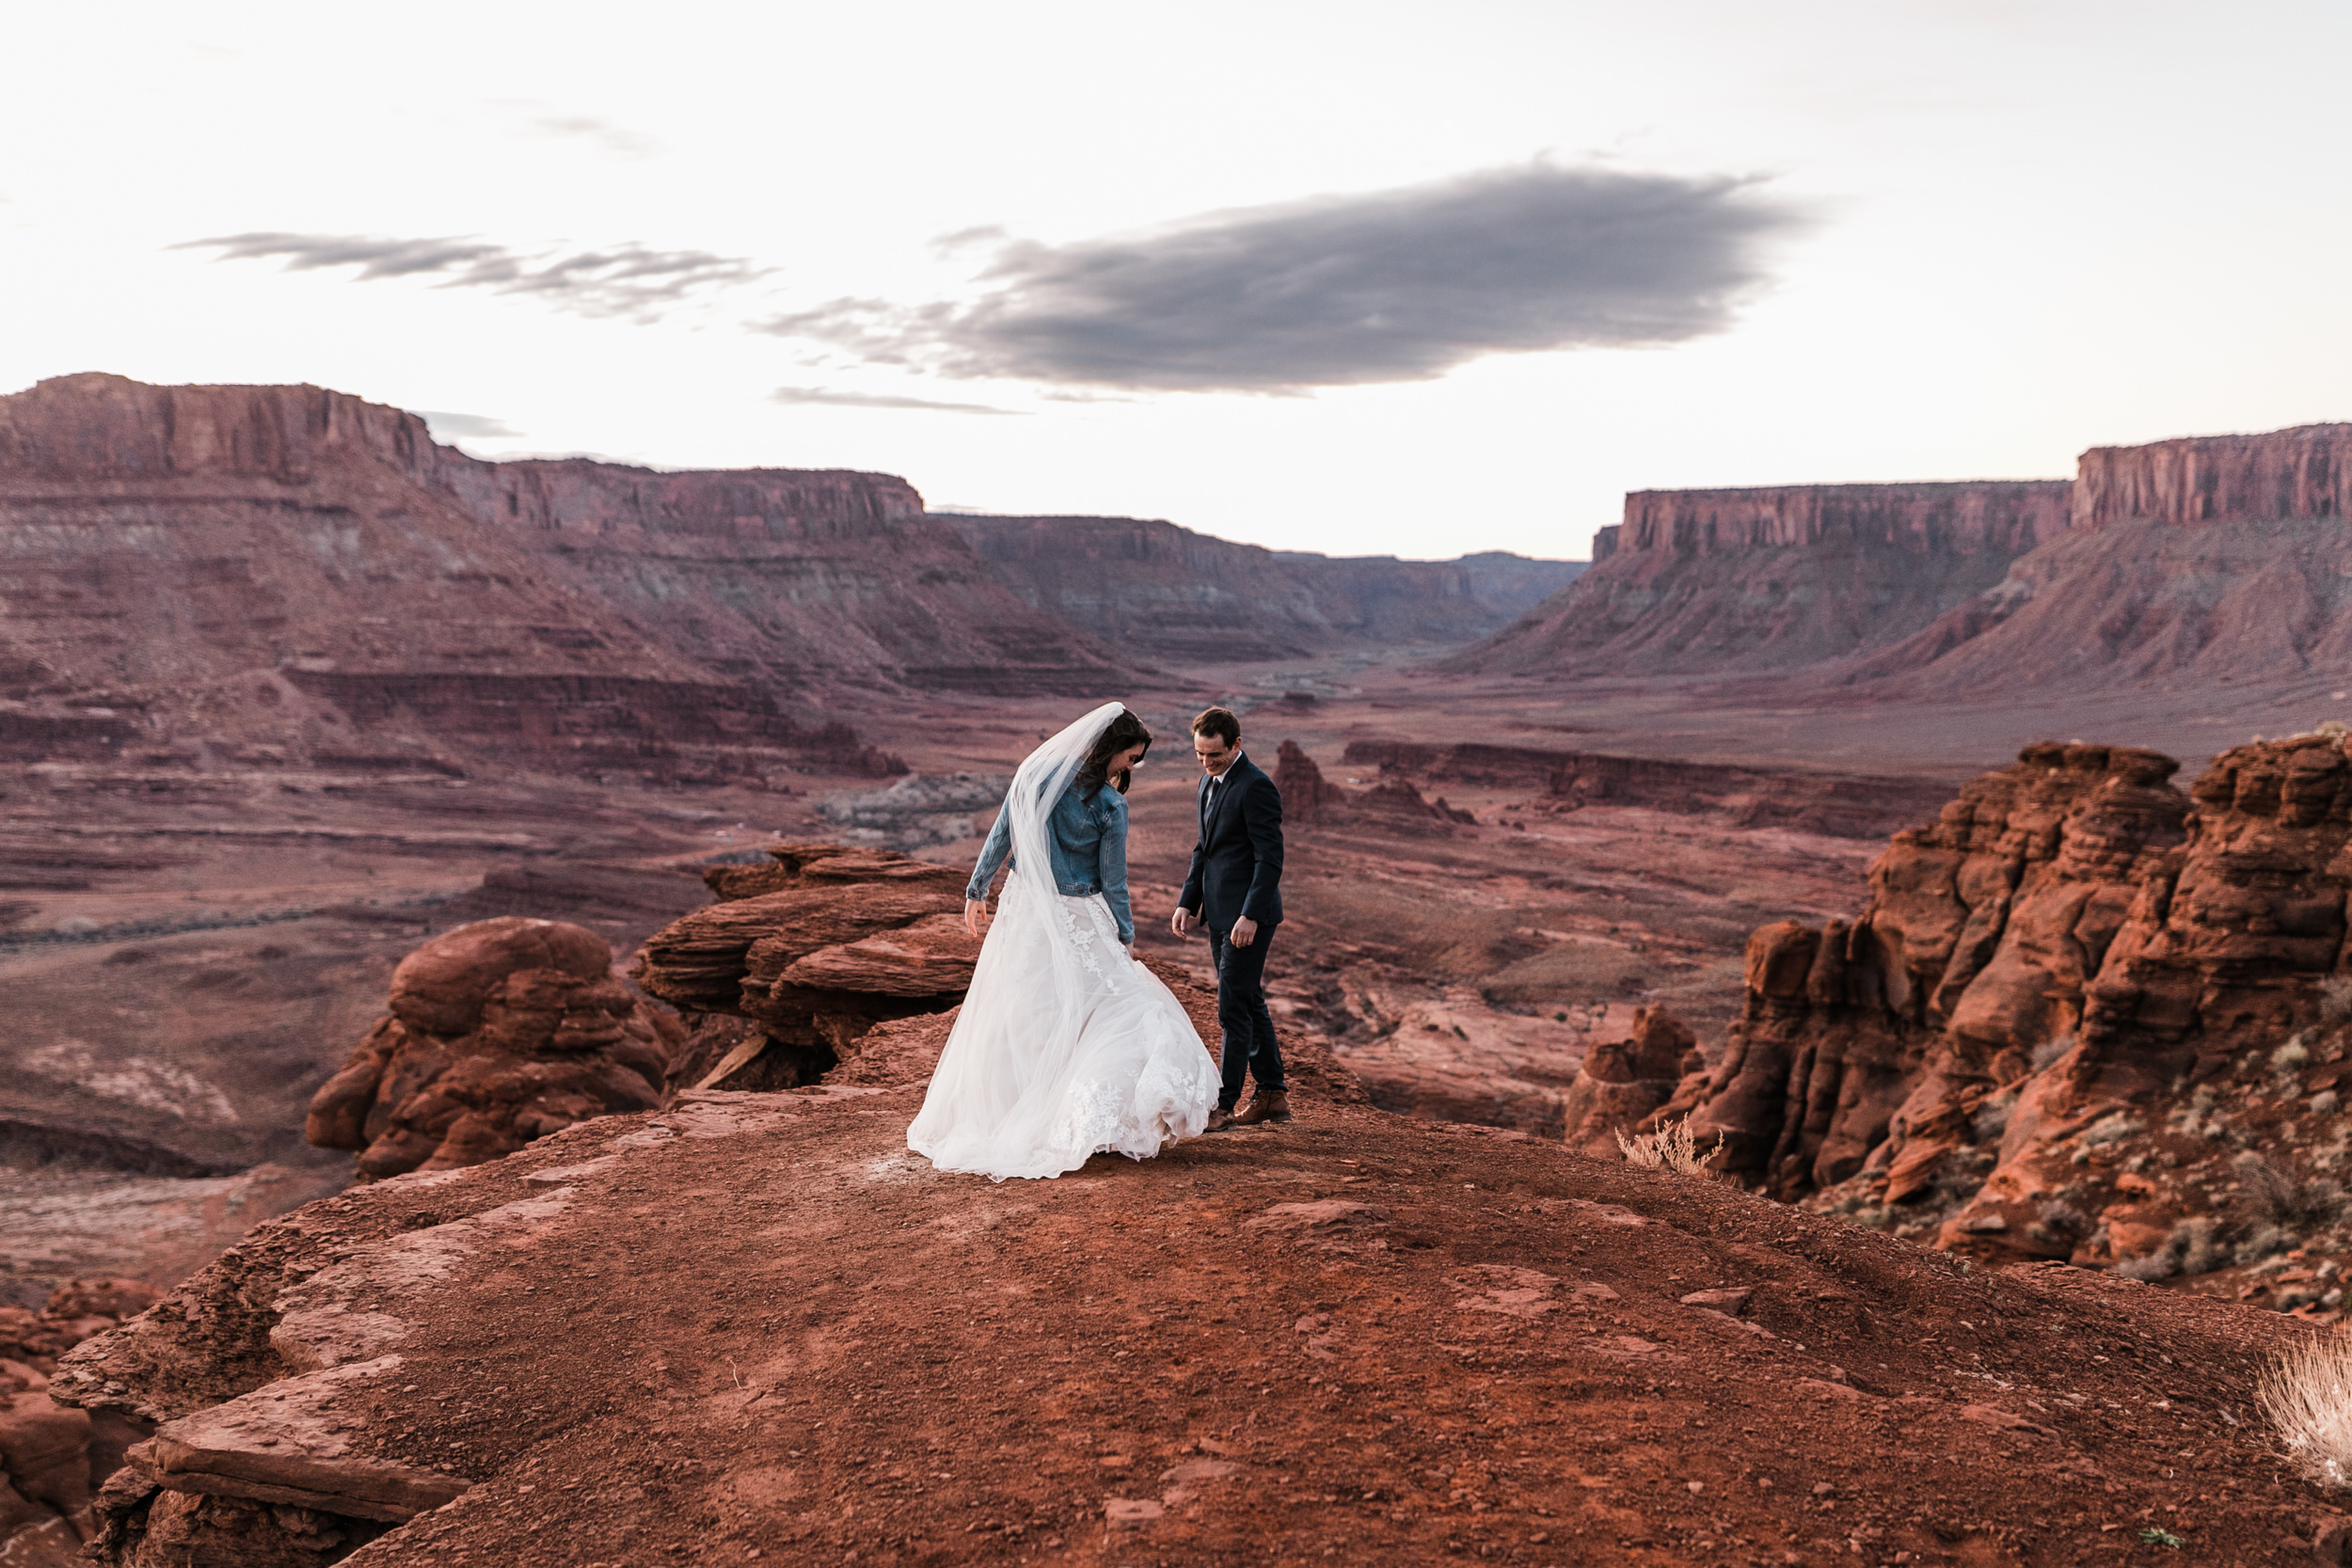 Jeff was absolutely in awe at their first look on the edge of the canyon. The wedding ceremony was later that evening in Arches National Park.